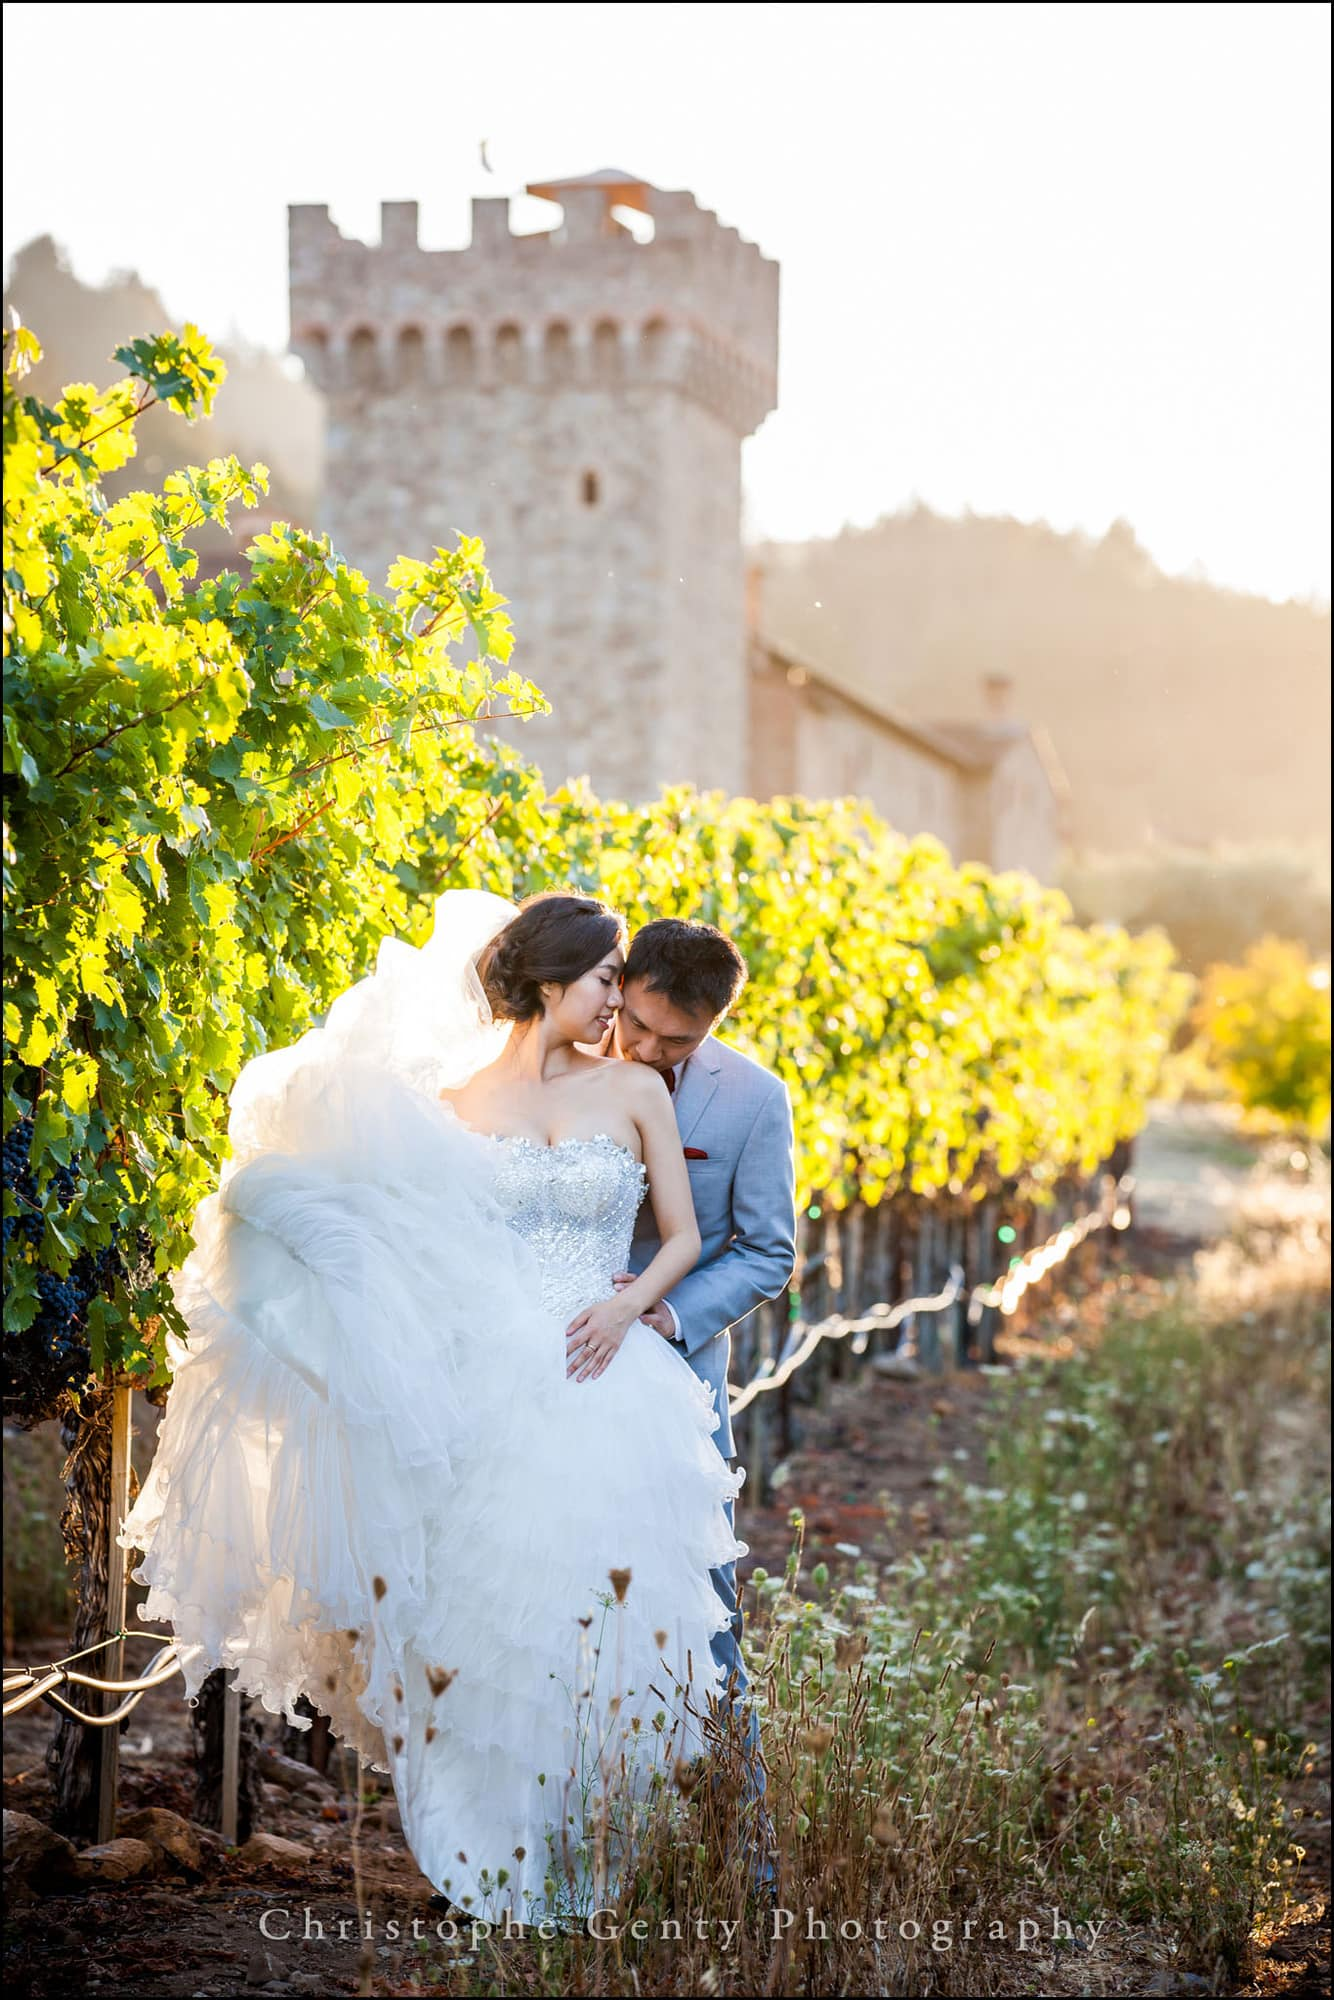 Pre-wedding photography at the Castello Di Amorosa in The Napa Valley